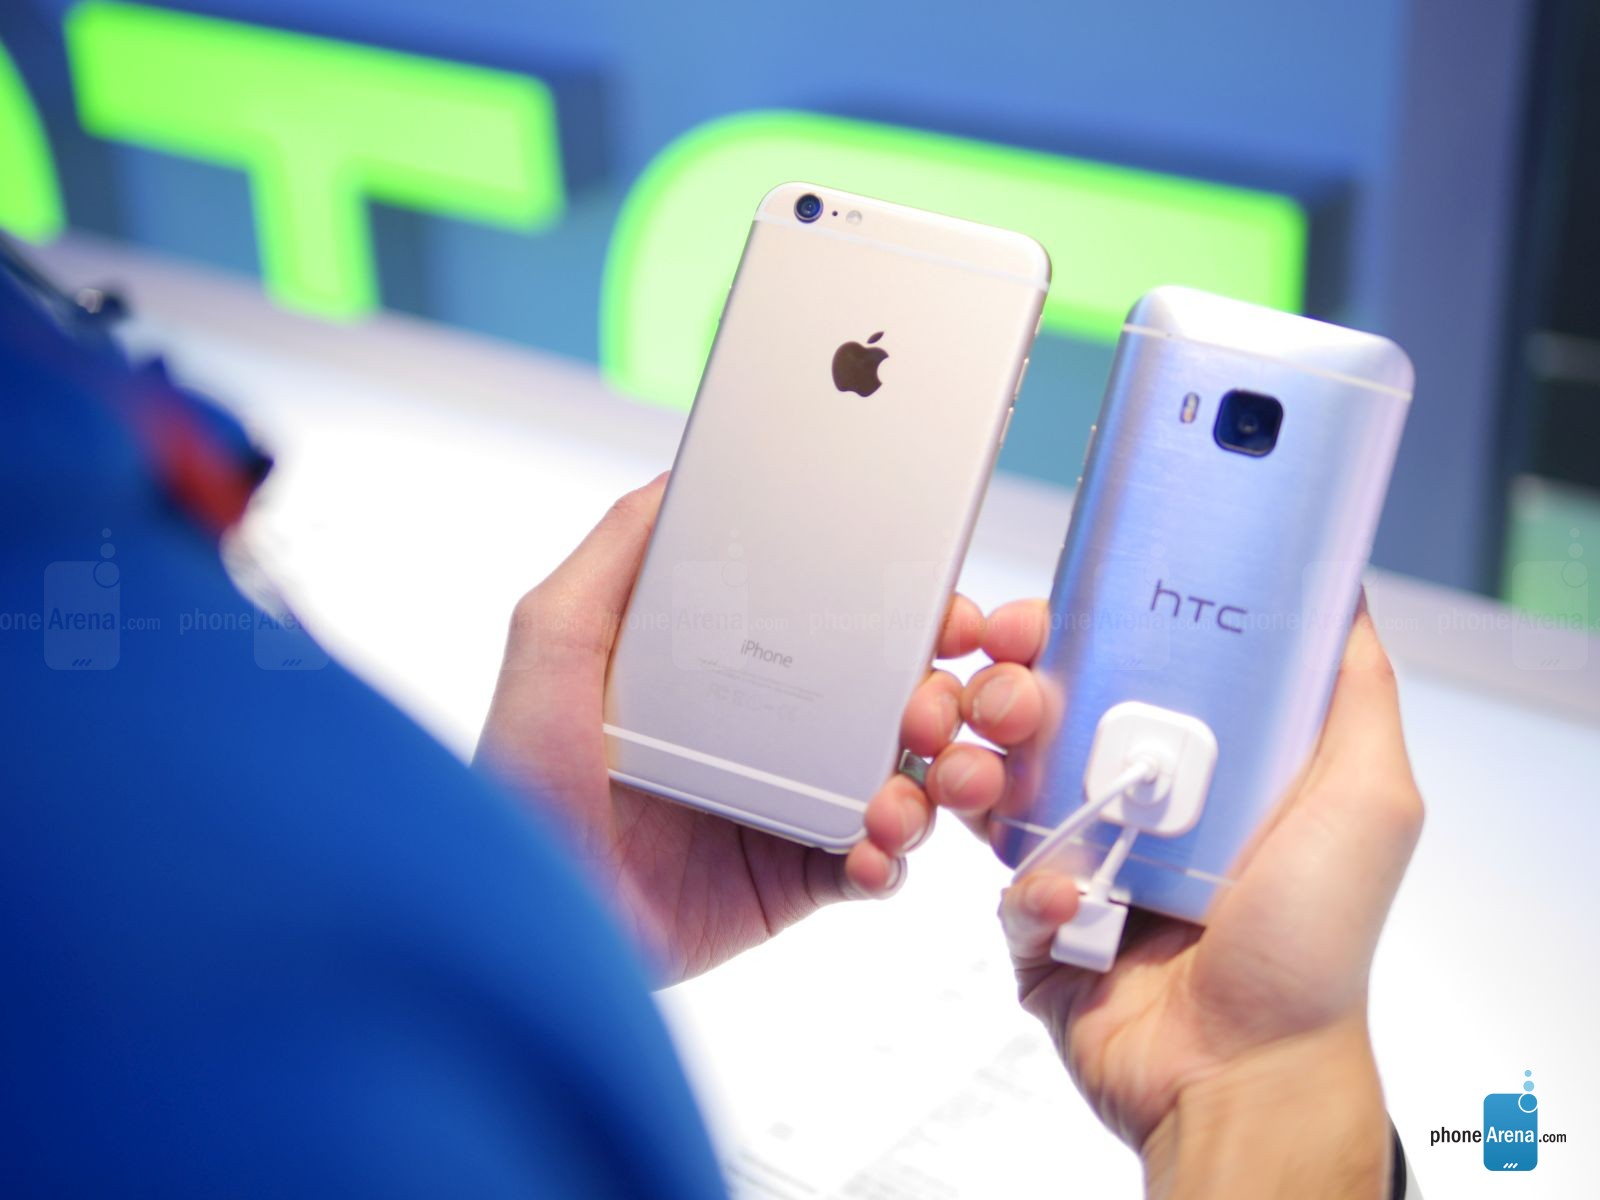 So sánh HTC One M9 với Apple iPhone 6 Plus